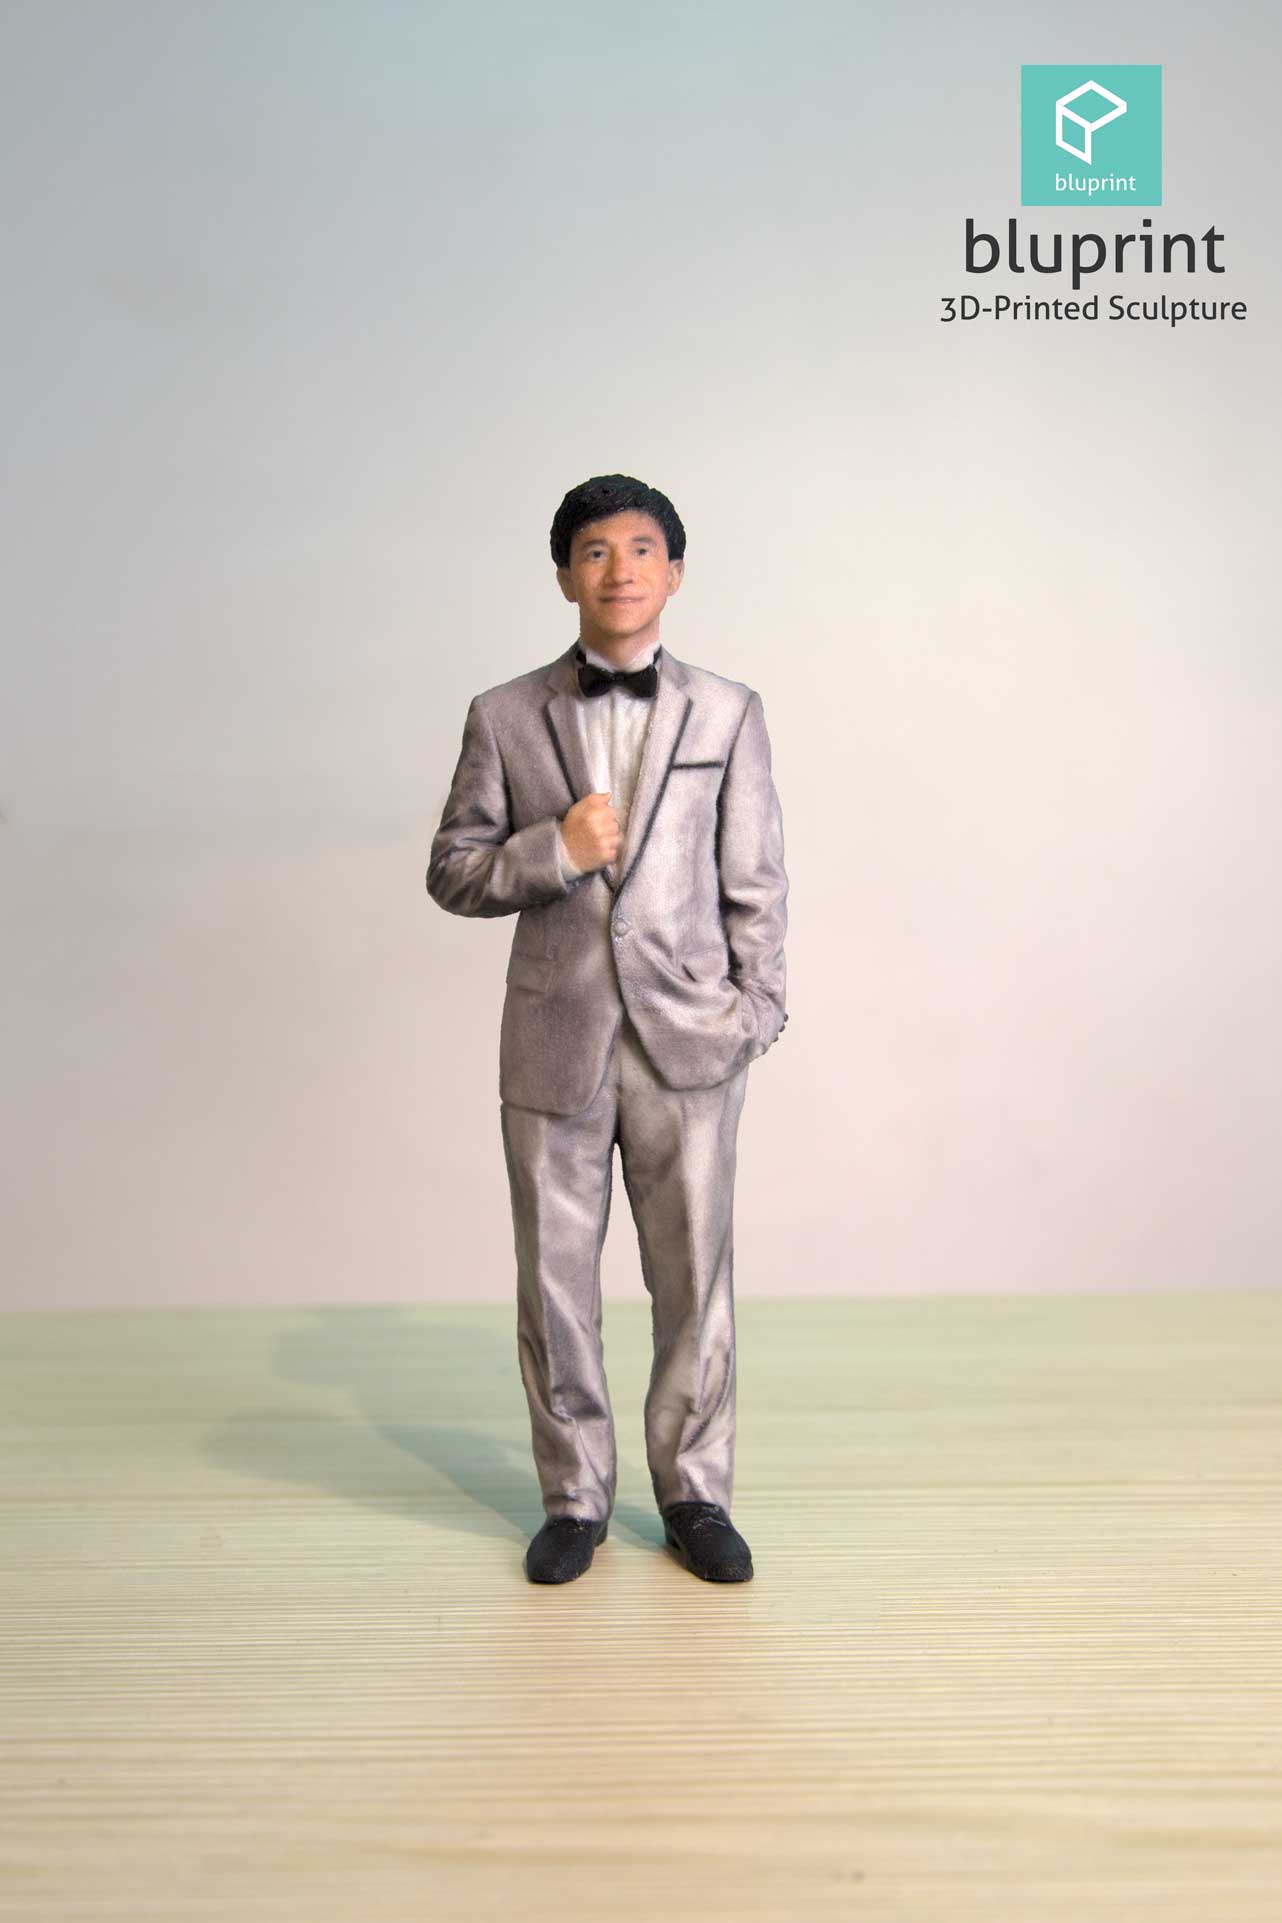 bluprint 3d figure sculpture hong kong wedding groom